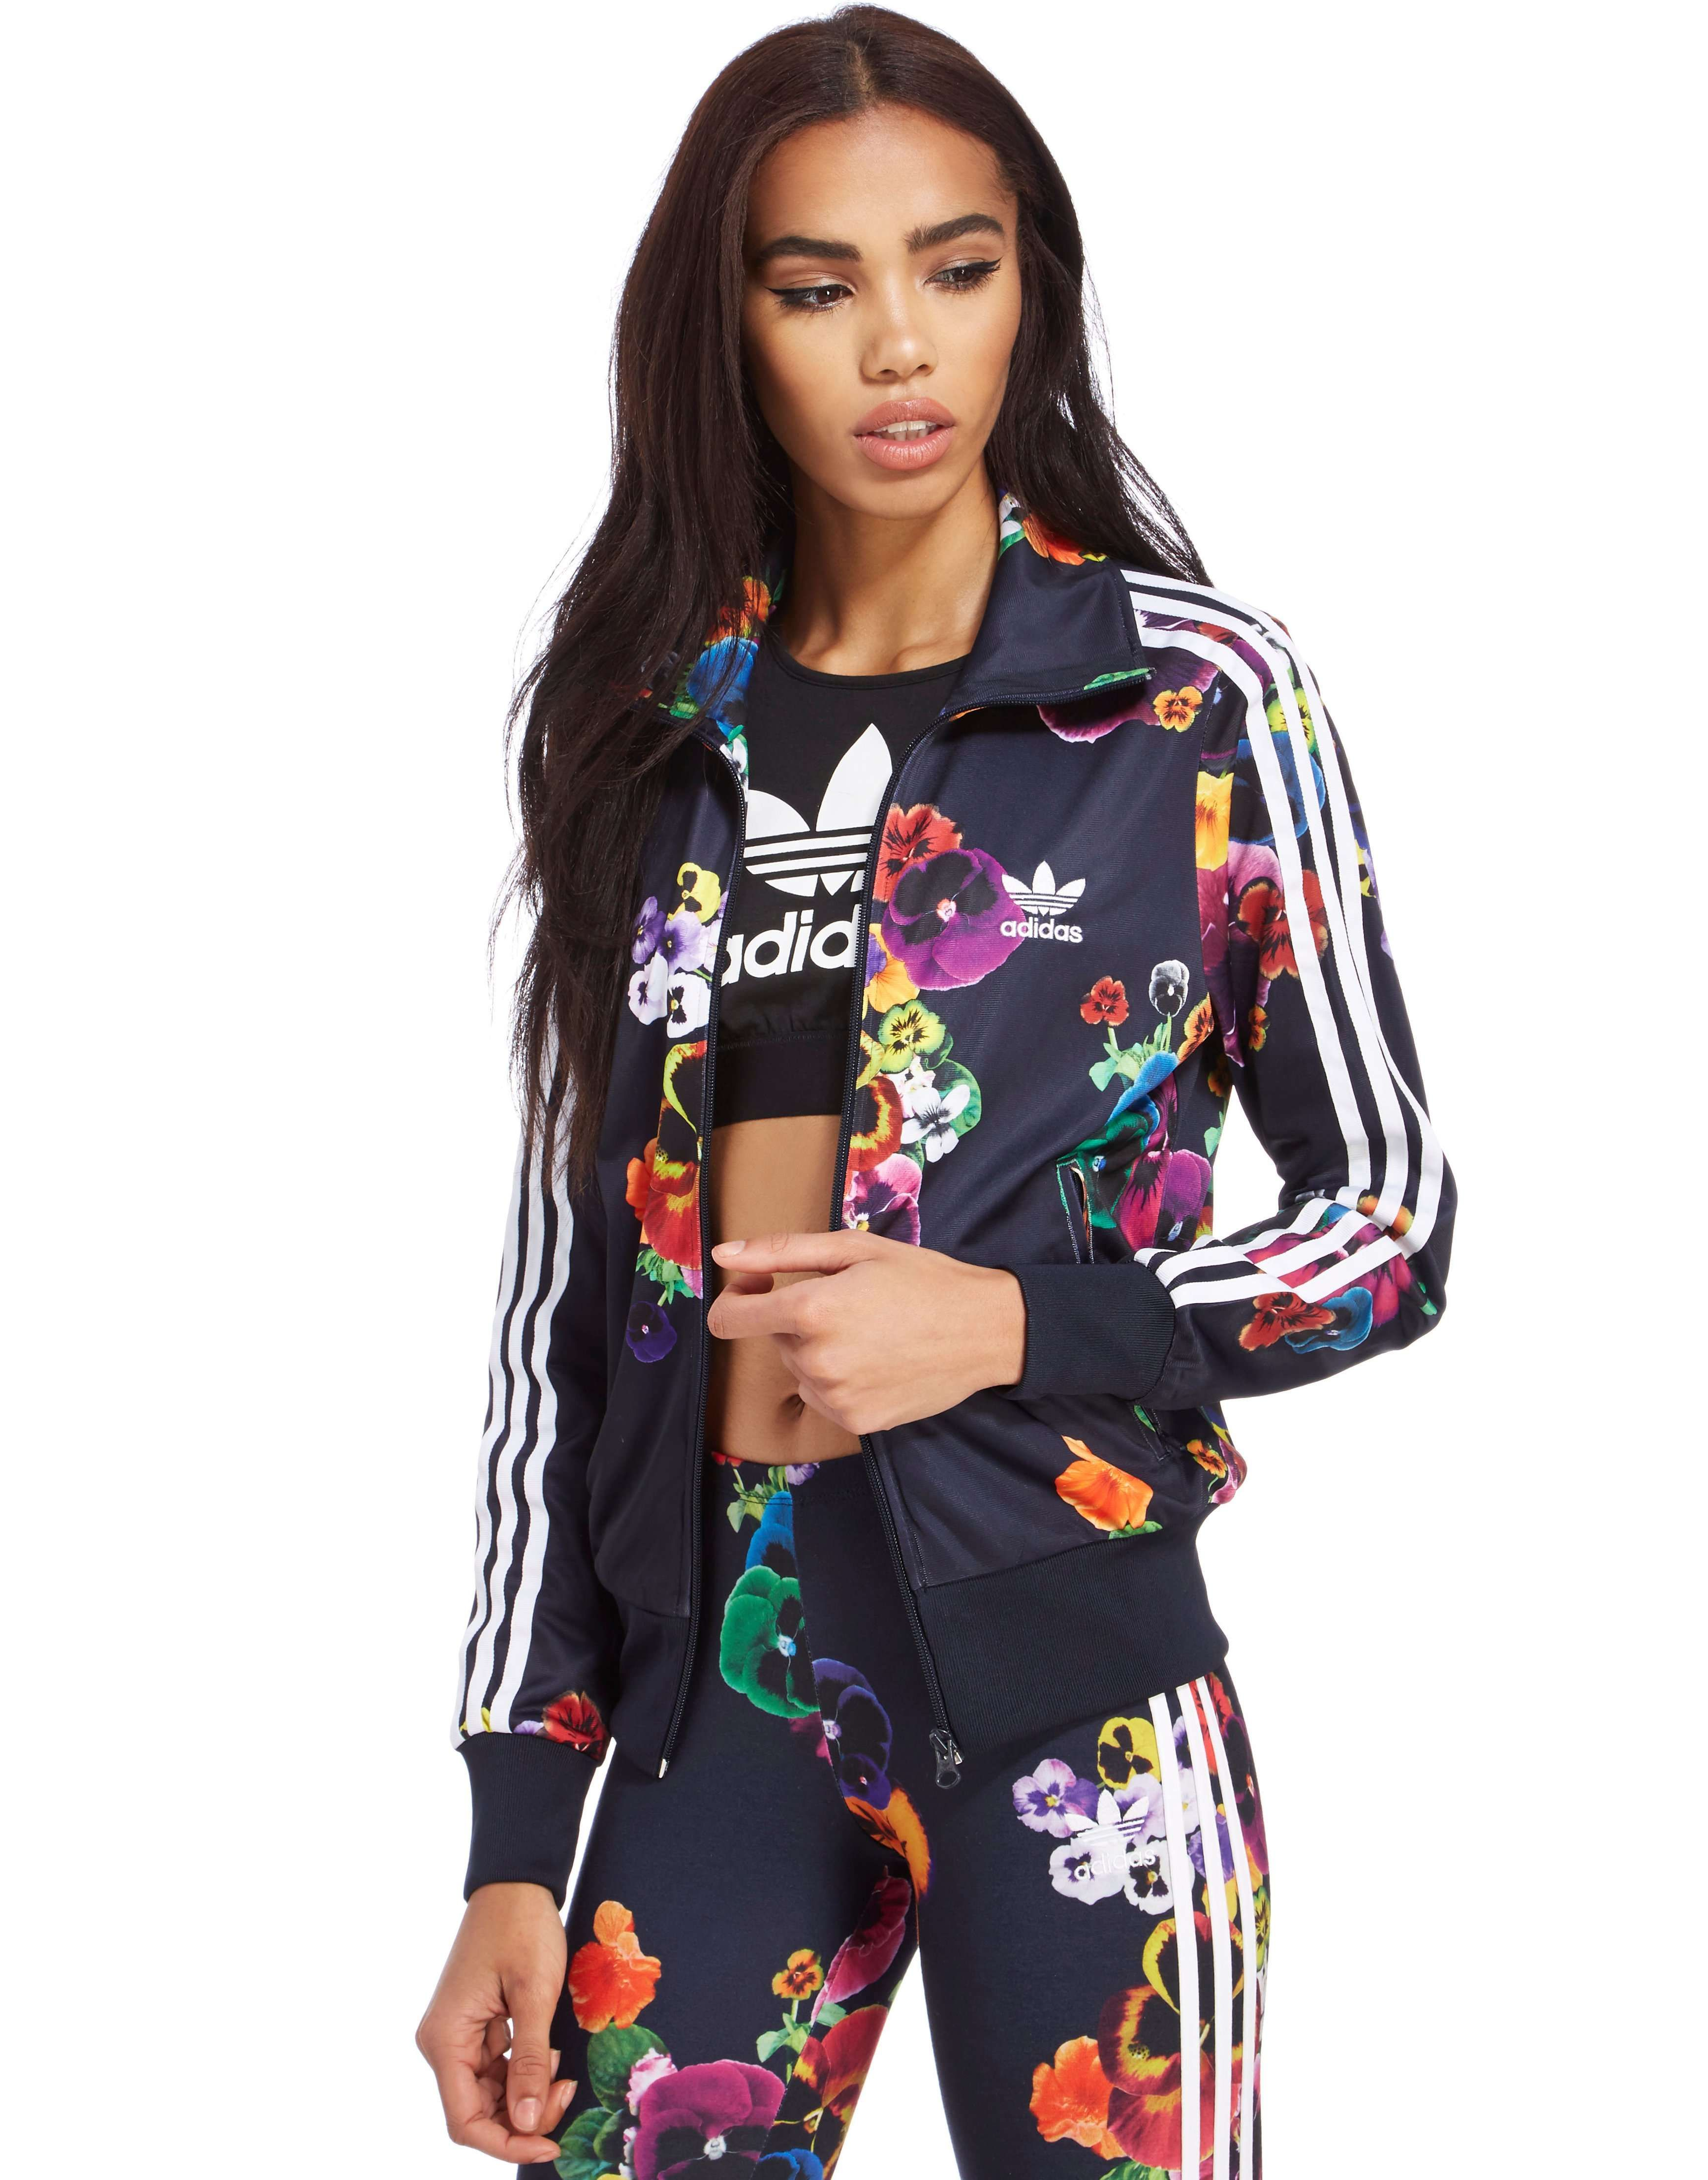 44d721cea0cfb Workout wear | Changing Fashions~*~ in 2019 | Adidas, Adidas outfit ...